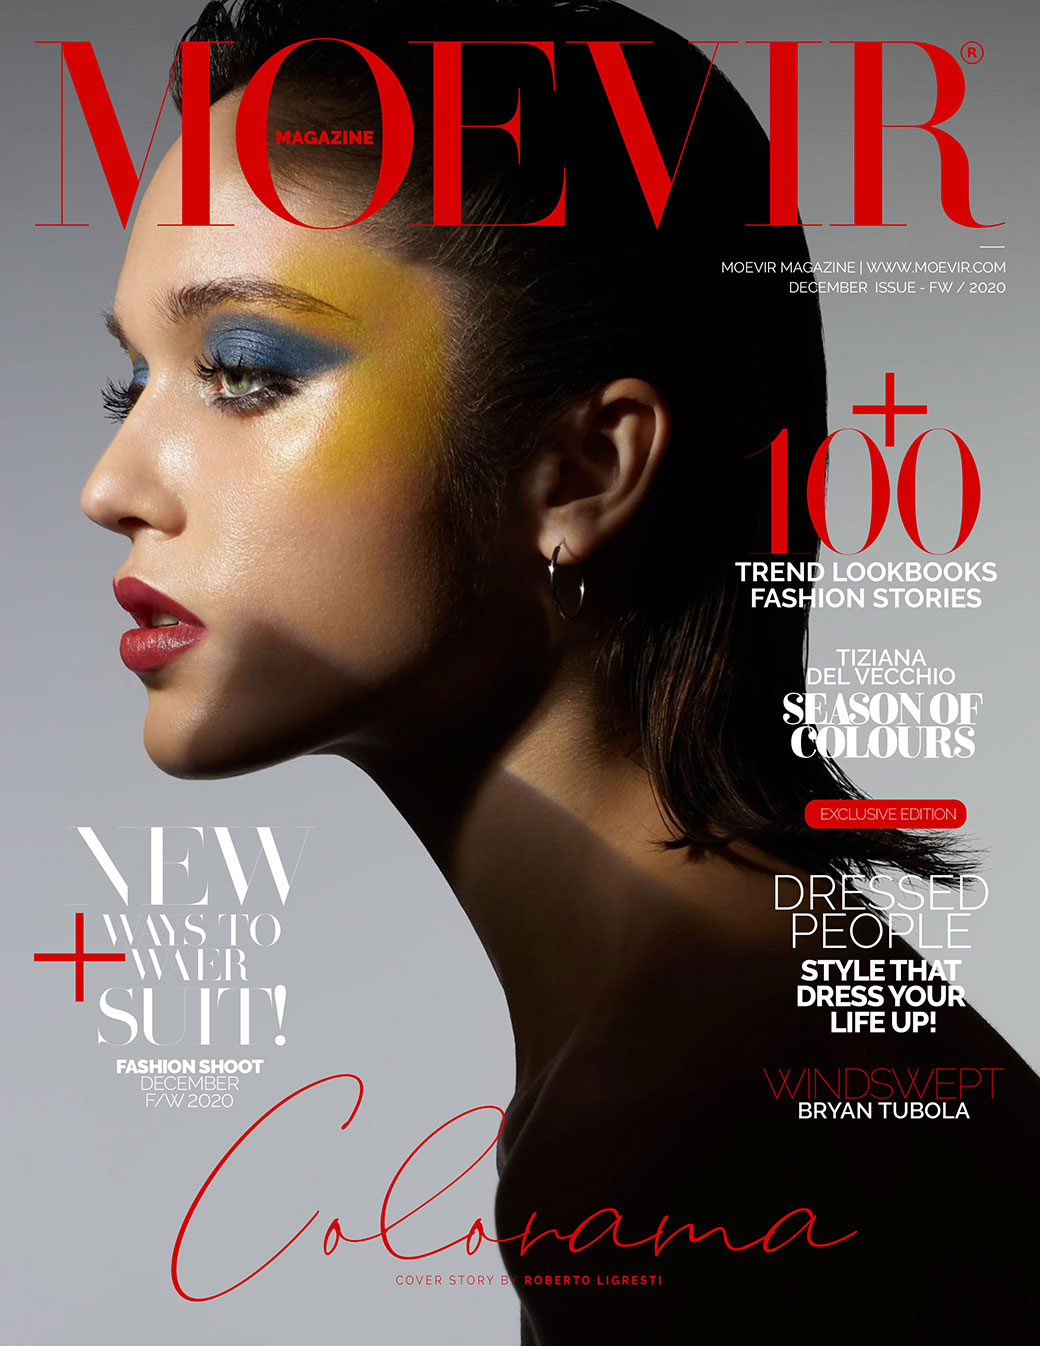 December_2020_36_Moevir_Magazine_December_Issue_2020.pdf